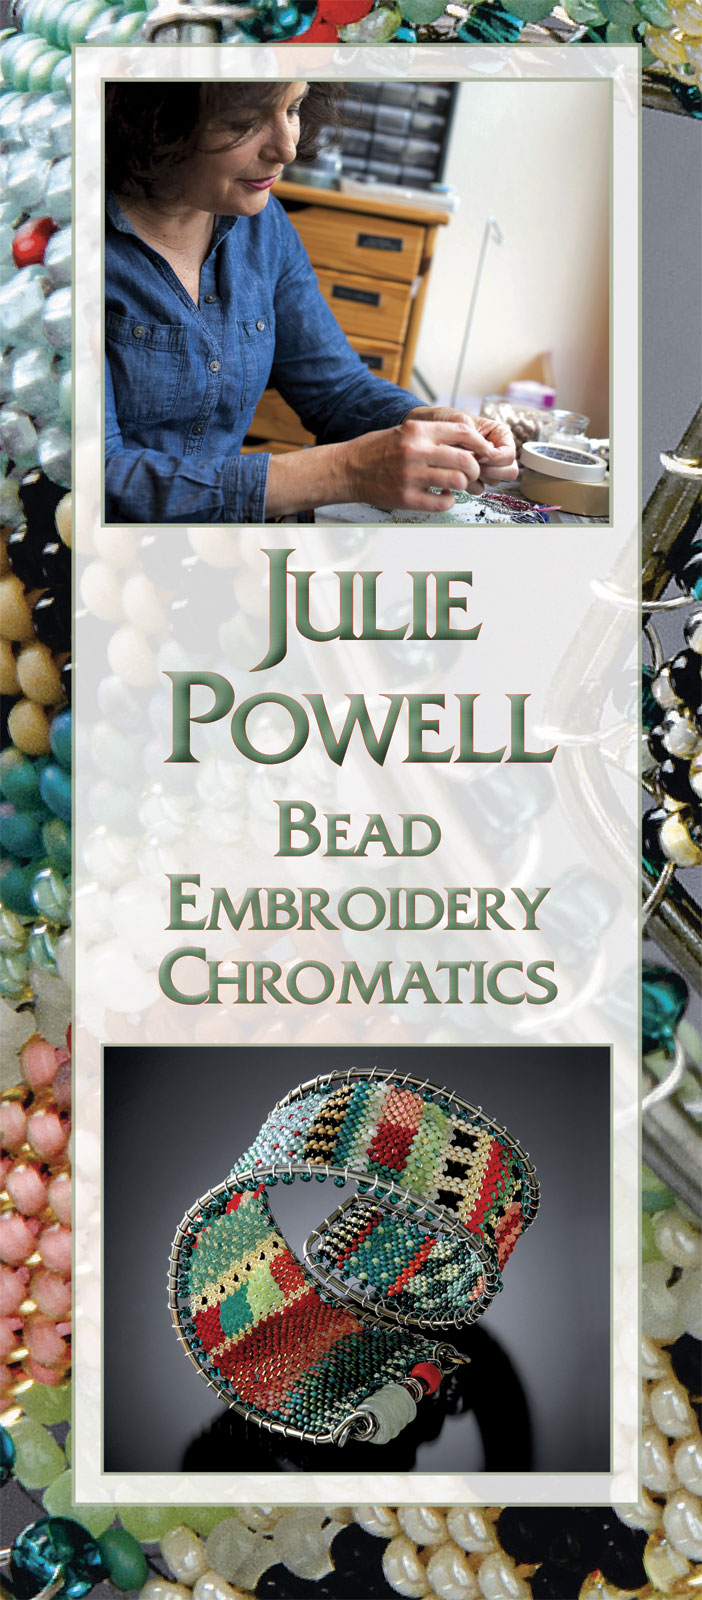 JULIE POWELL.  Photograph by Dog Daze Studio.  PATTERNED WRAP CUFF of glass seed beads, woven off loom in peyote stitch with a needle and fishing line. This woven fabric is created and then stretched over a sterling silver wire frame, and laced with fine sterling silver wire. The flexible cuff wraps around the wrist one and a half times, 25.0 centimeters long x 3.6 centimeters high, 2015.  Jewelry photographs by Larry Sanders.